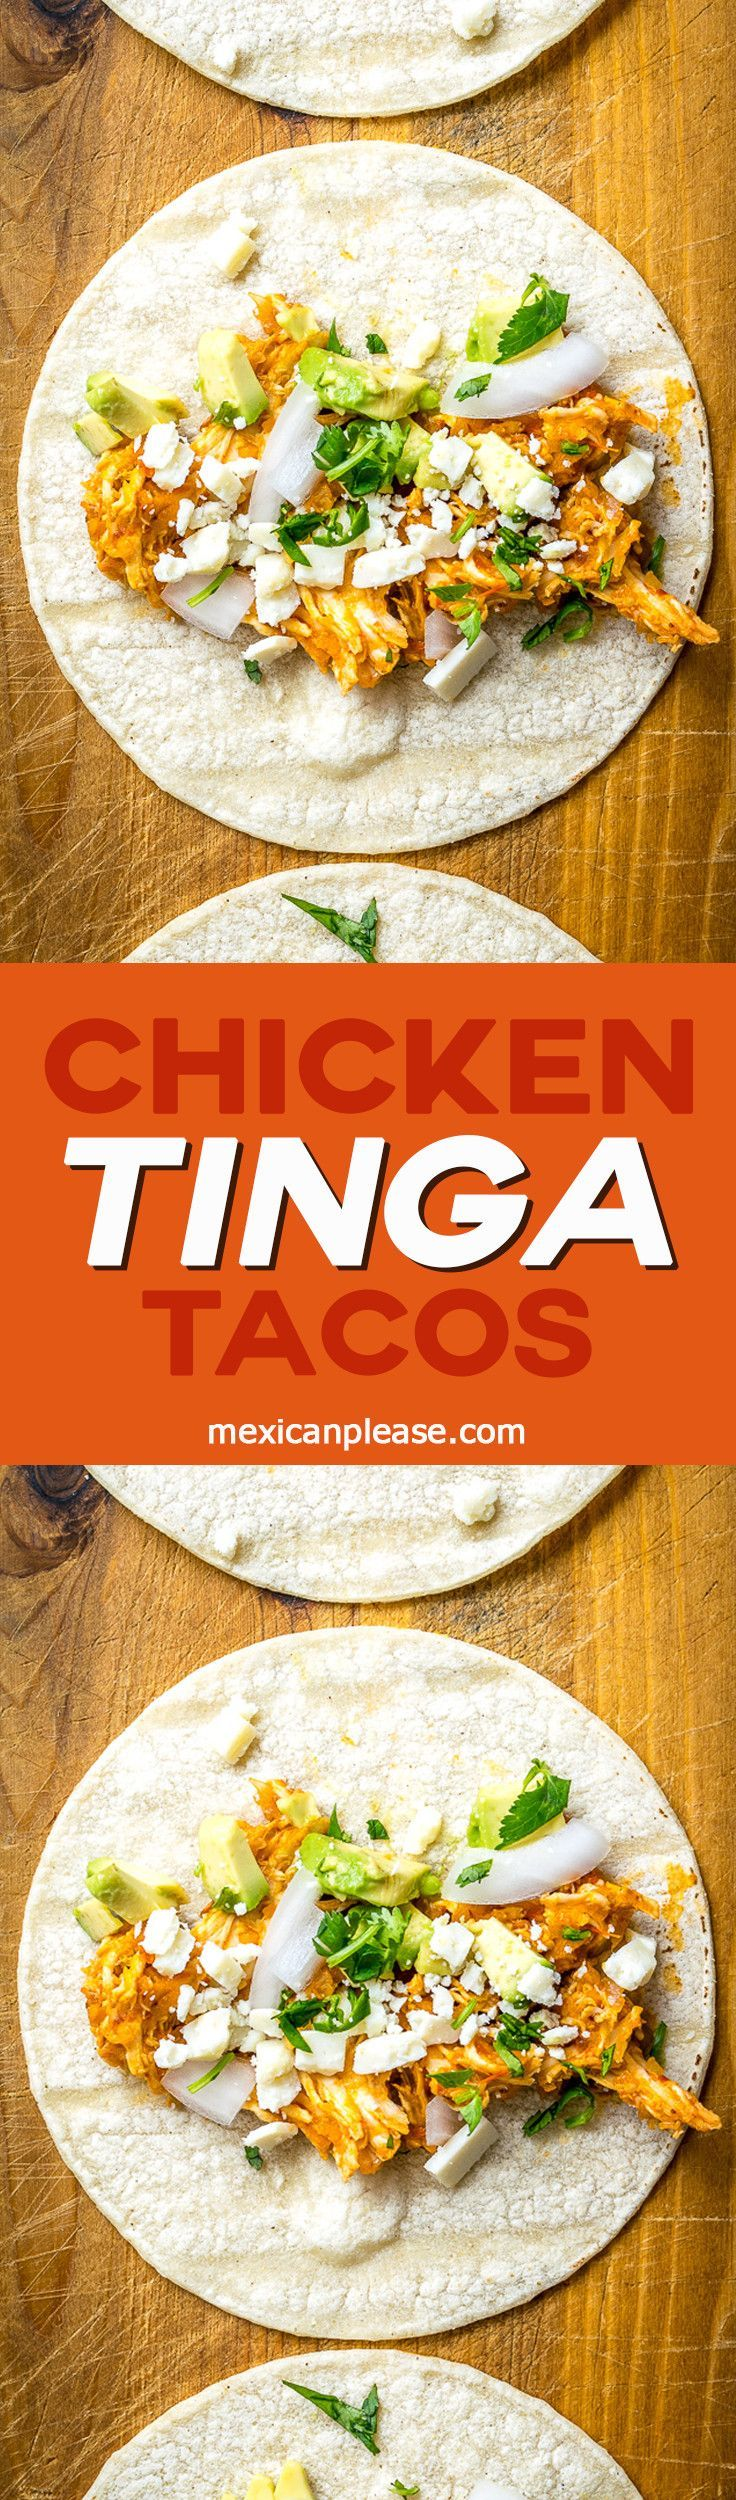 These Chicken Tinga Tacos have incredible flavor and definitely qualify as Tingalicious!!  http://mexicanplease.com